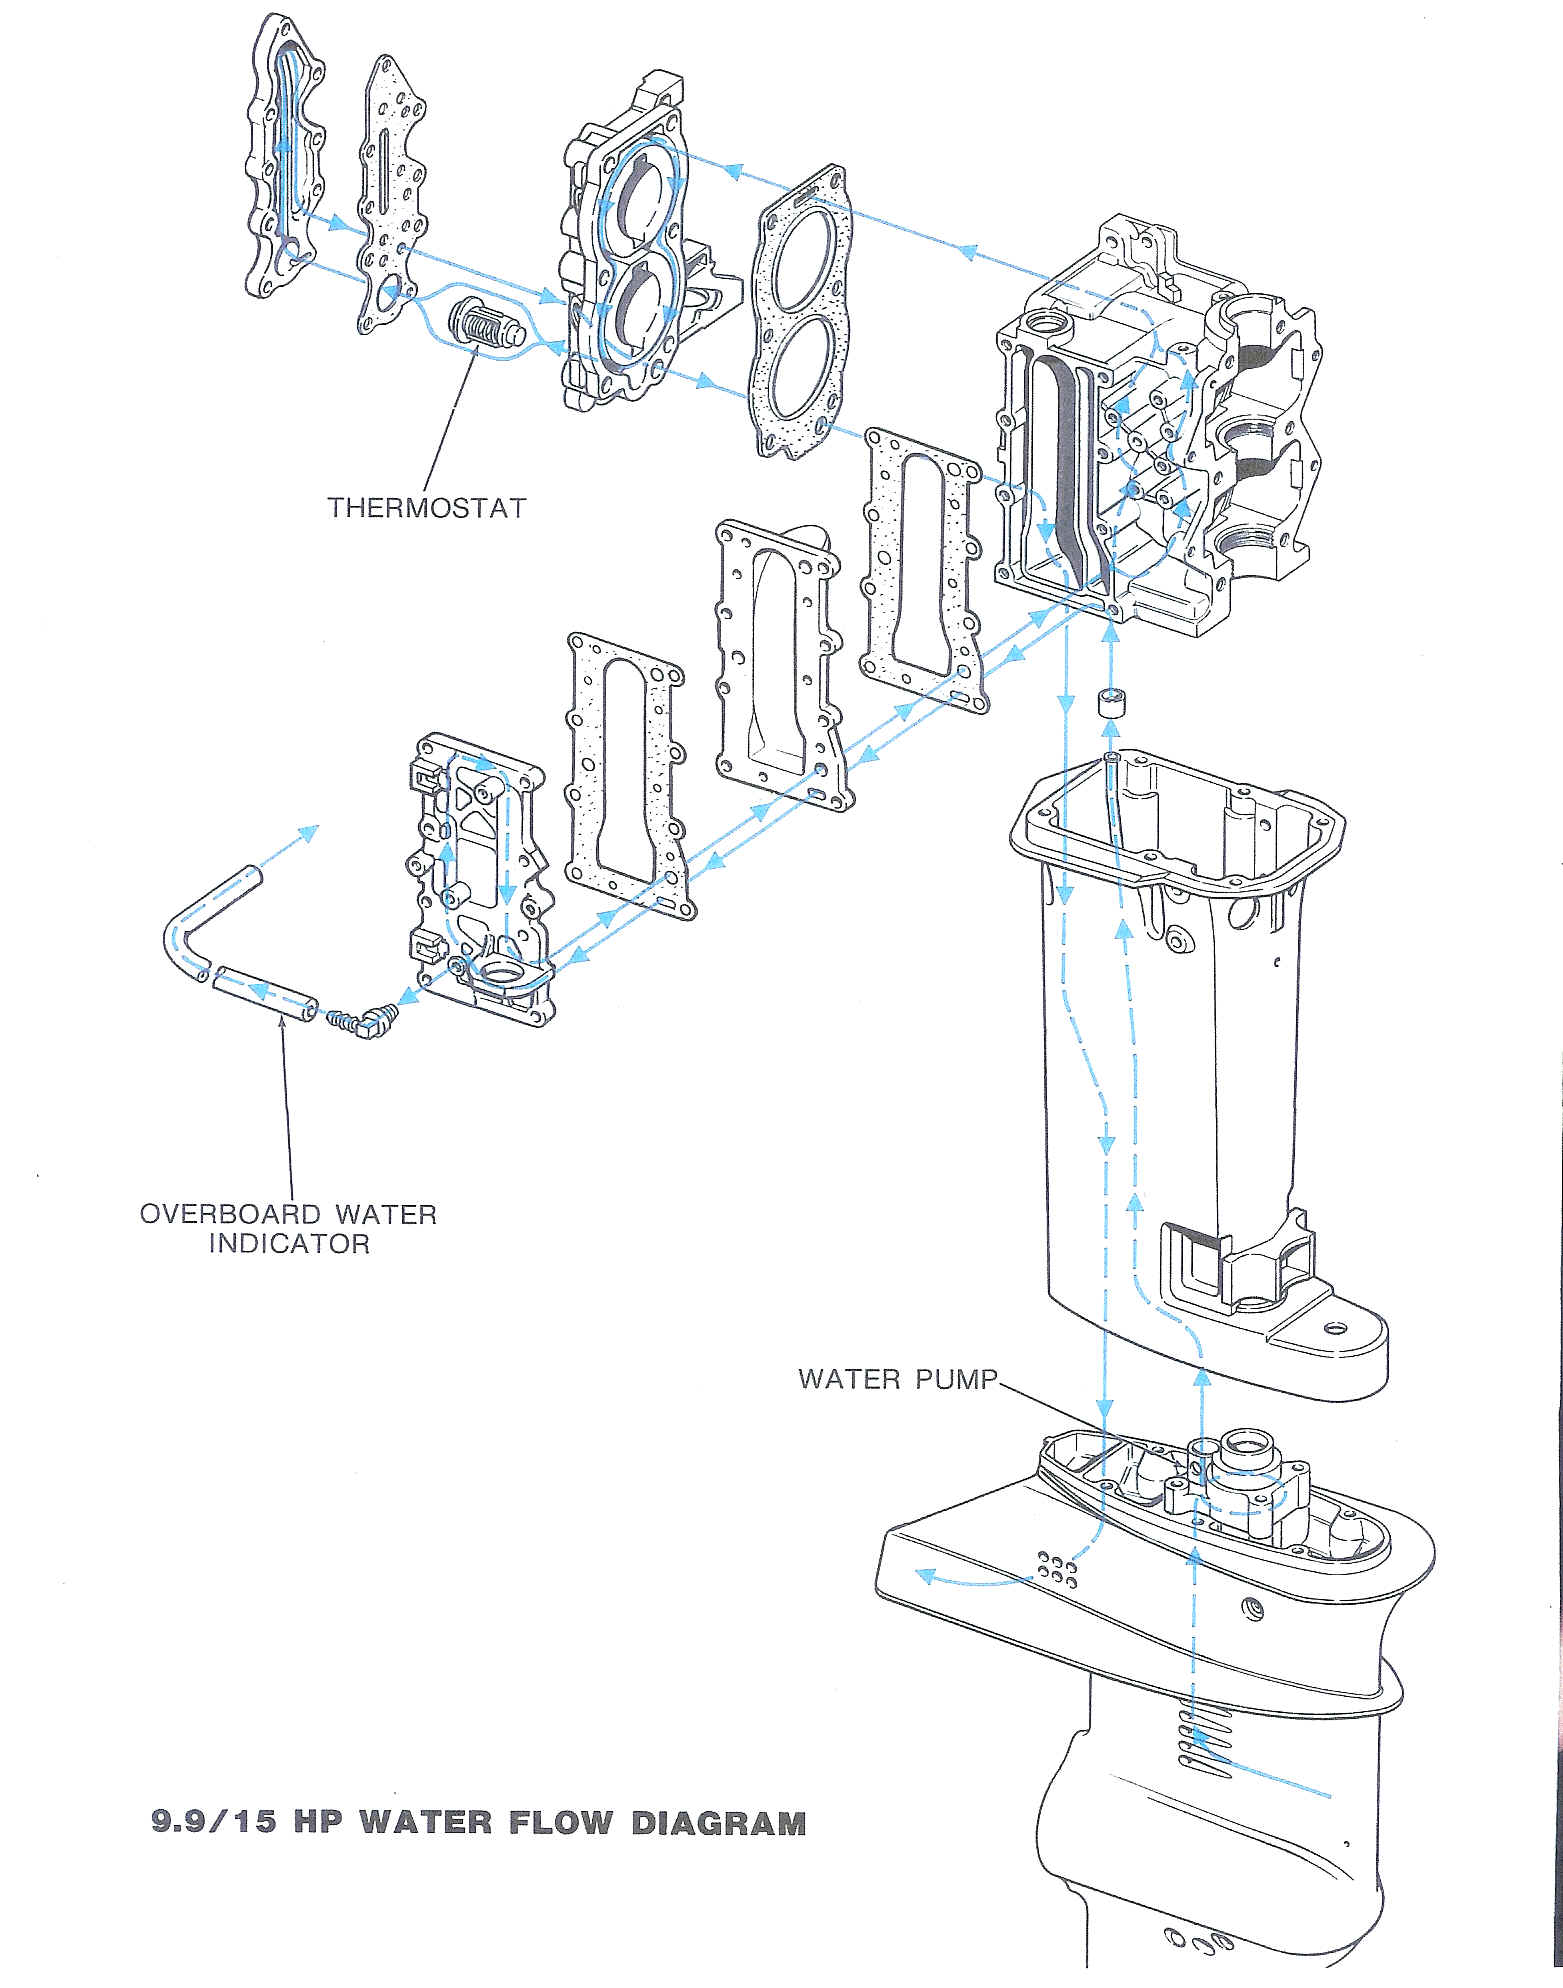 35 hp johnson 3 cyl wiring diagram Images Gallery. 74 on water problems